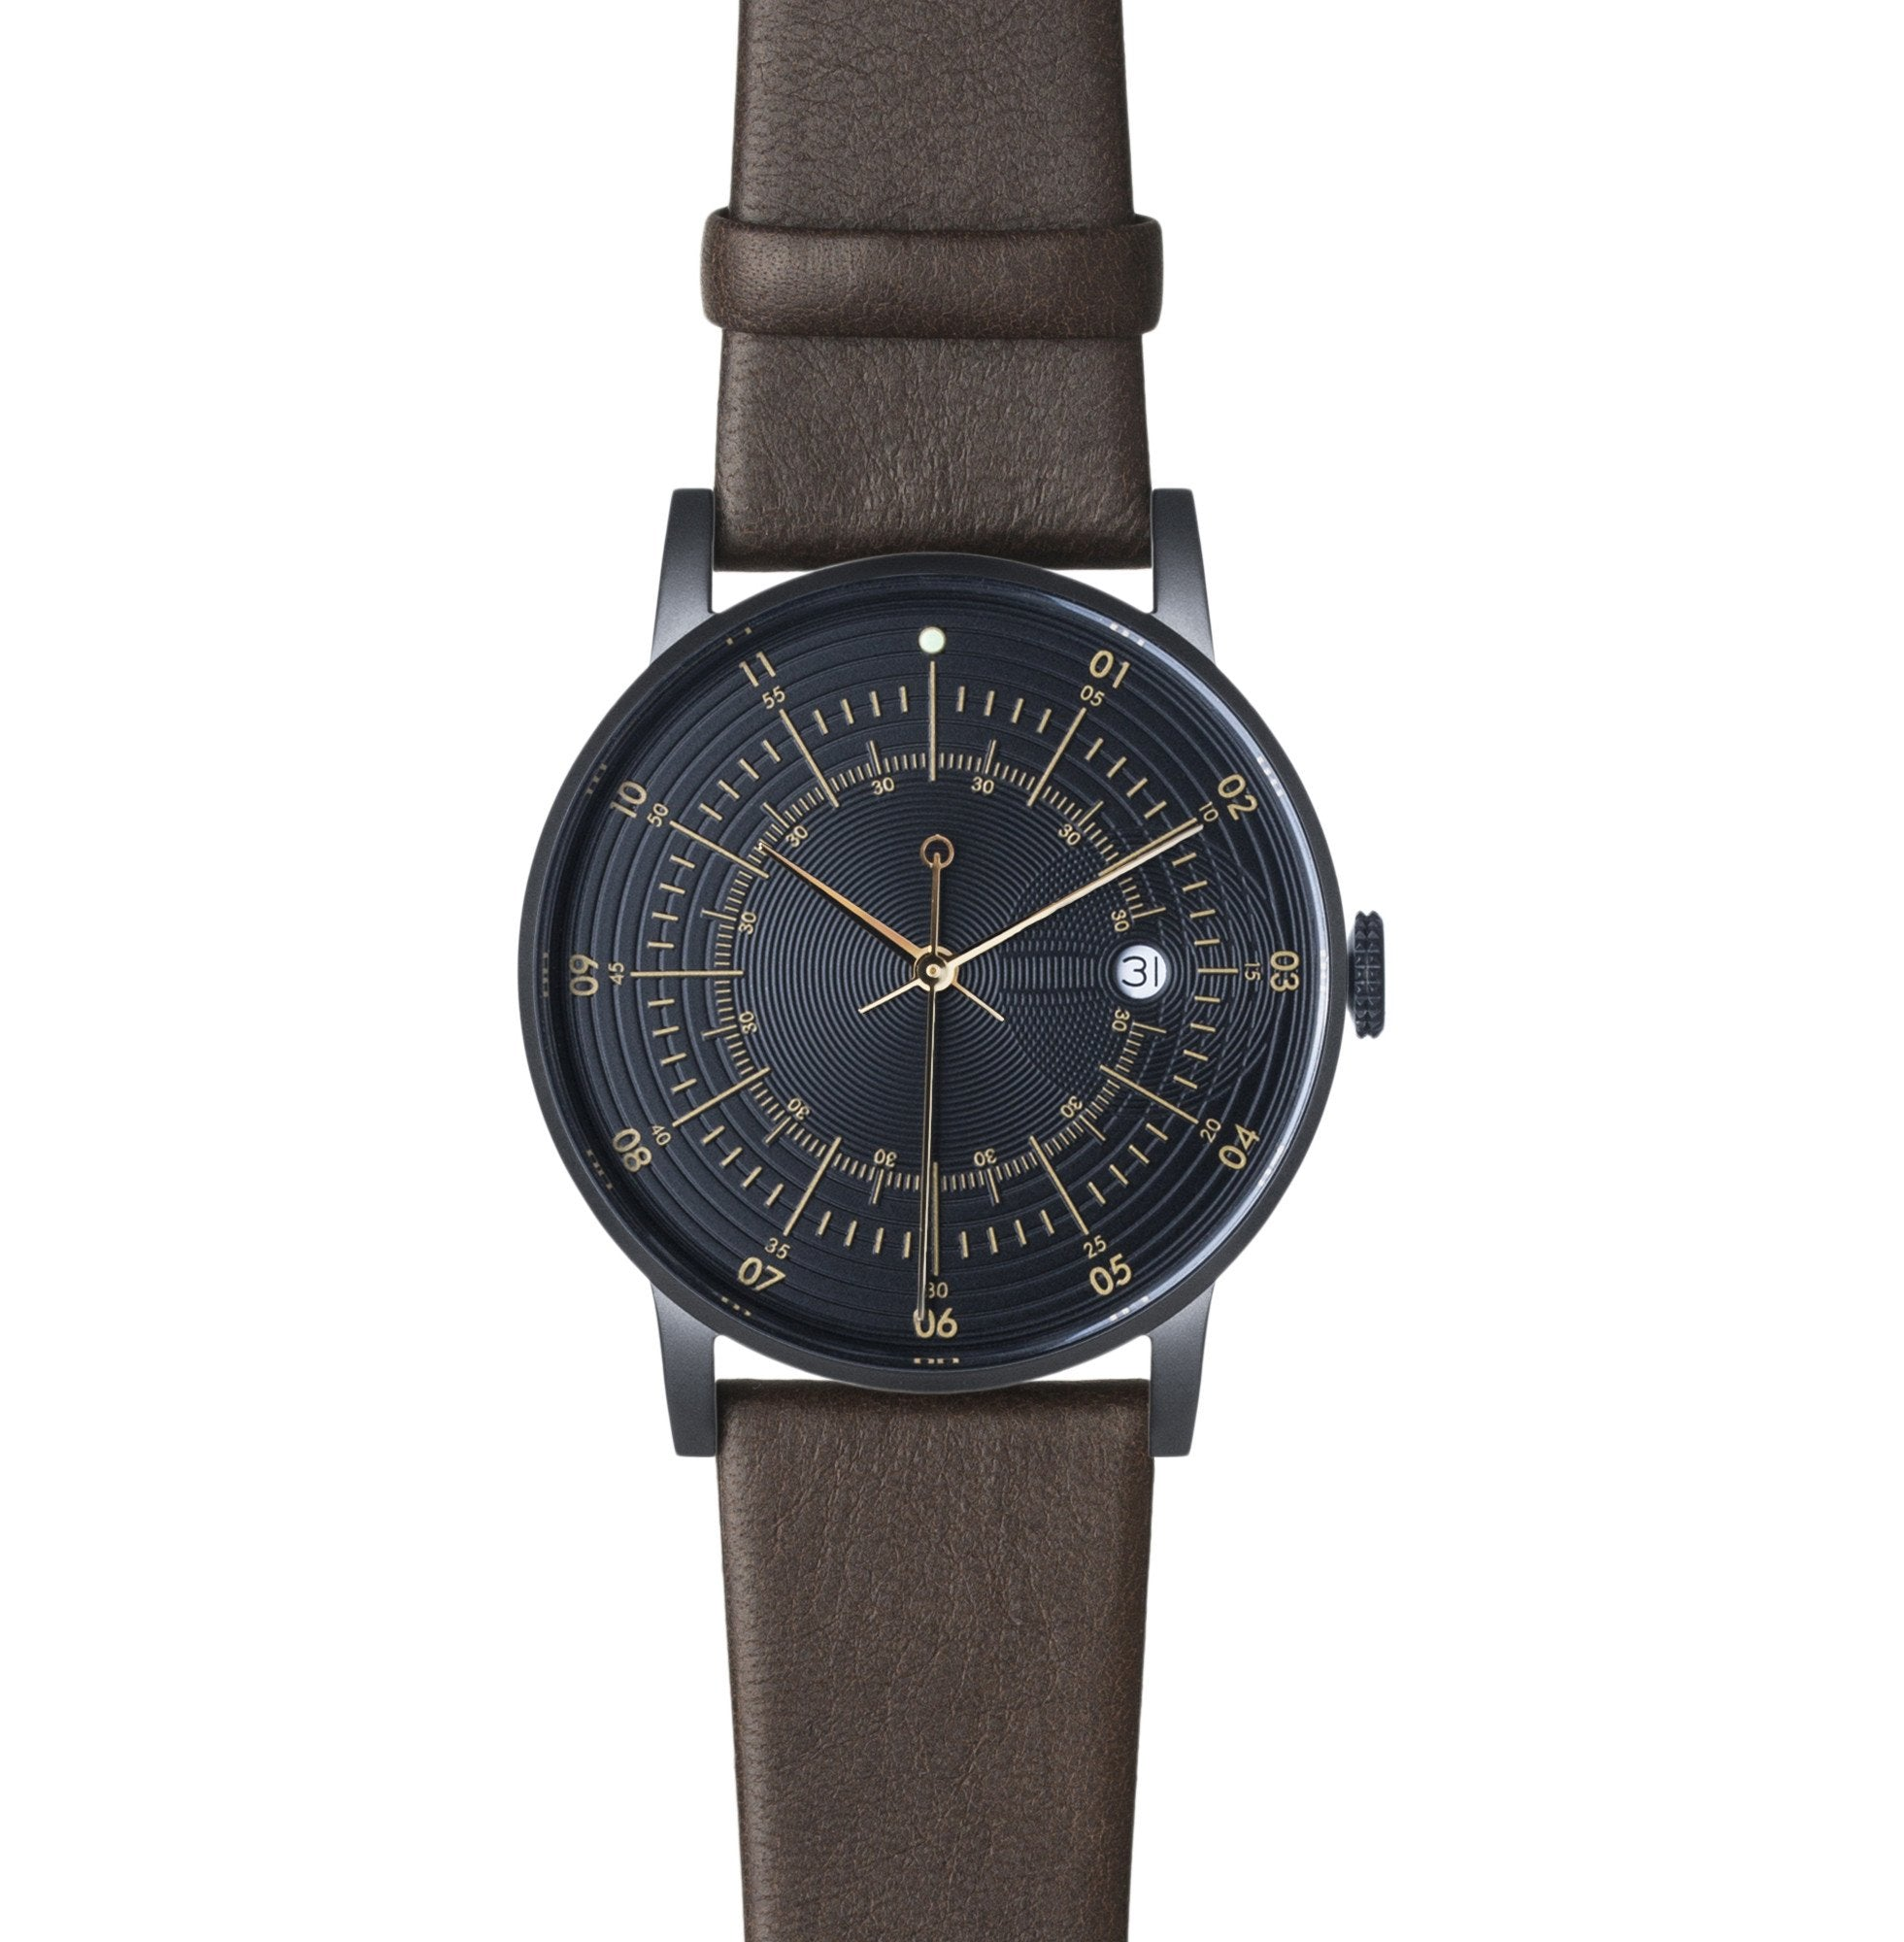 SQ38 Plano watch, PS-24